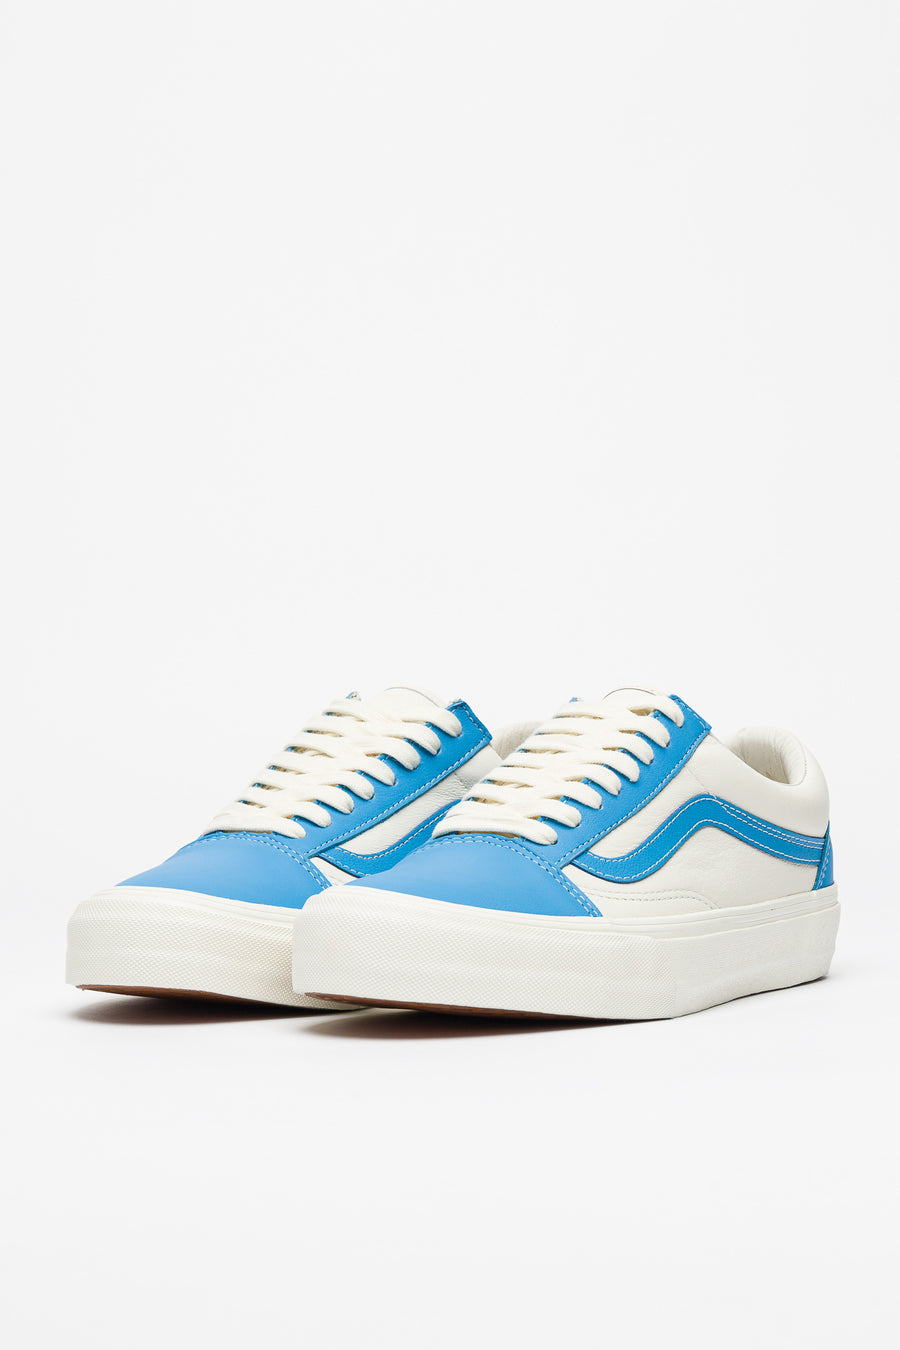 Old Skool VLT LX Leather in Bonnie Blue